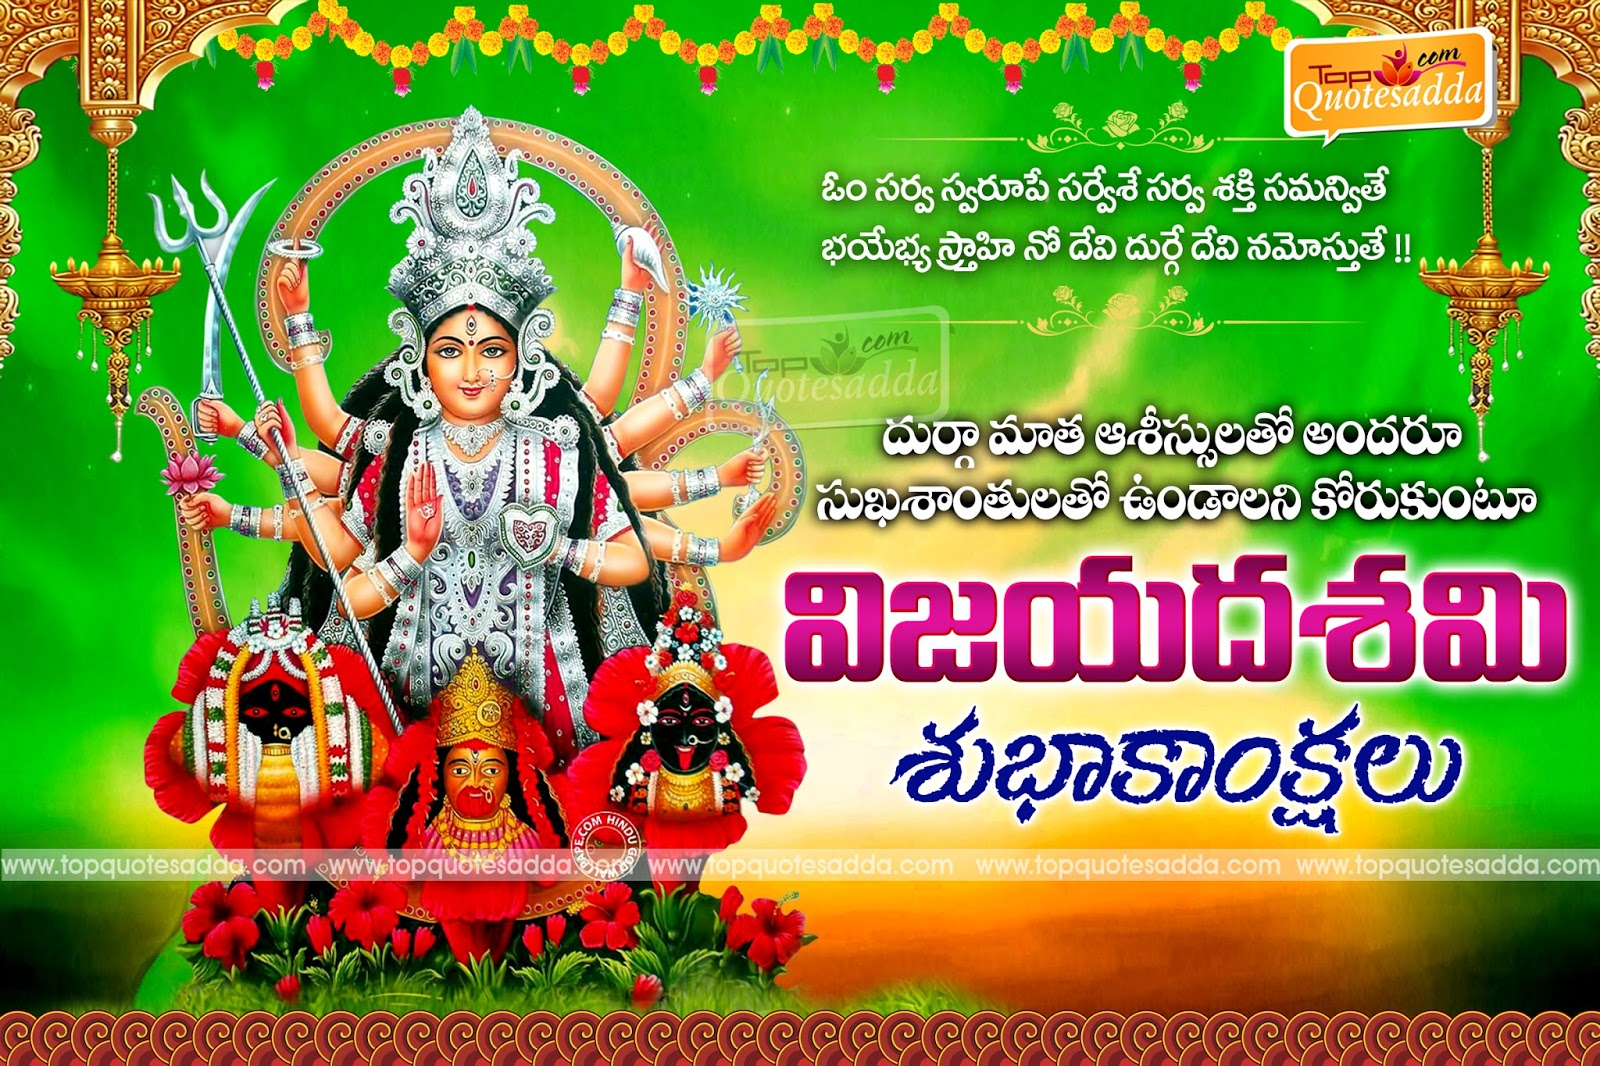 Happy Dussehra Quotes And Greetings In Telugu Topquotesadda